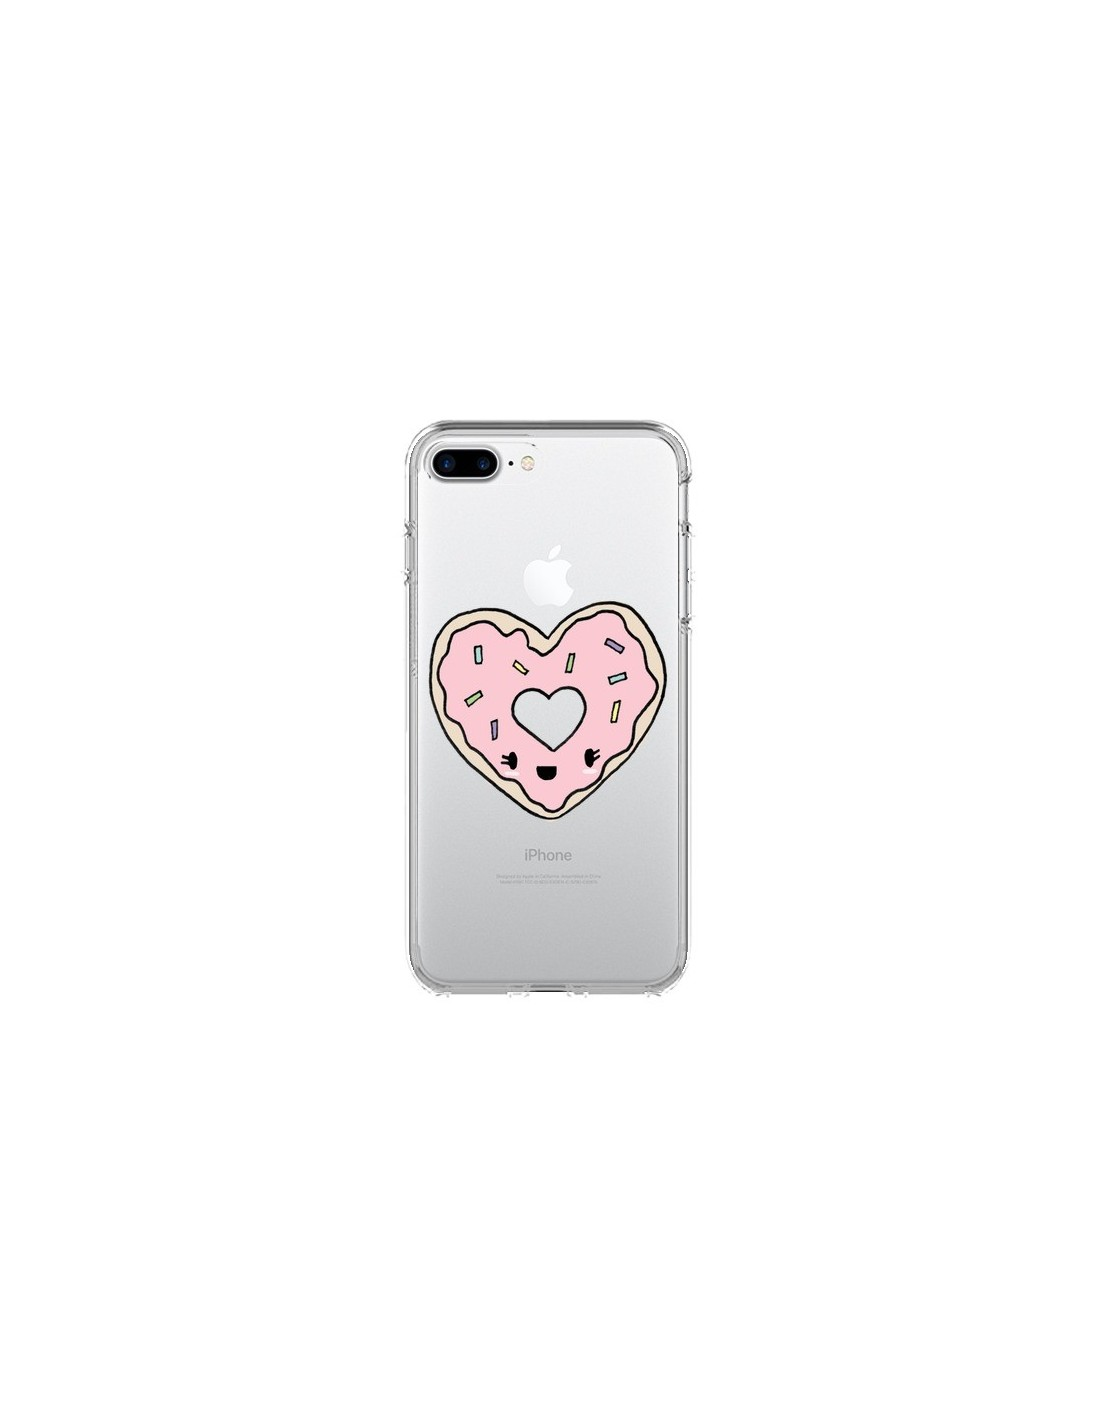 coque donuts heart coeur rose transparente pour iphone 7 plus et 8 plus claudia ramos. Black Bedroom Furniture Sets. Home Design Ideas